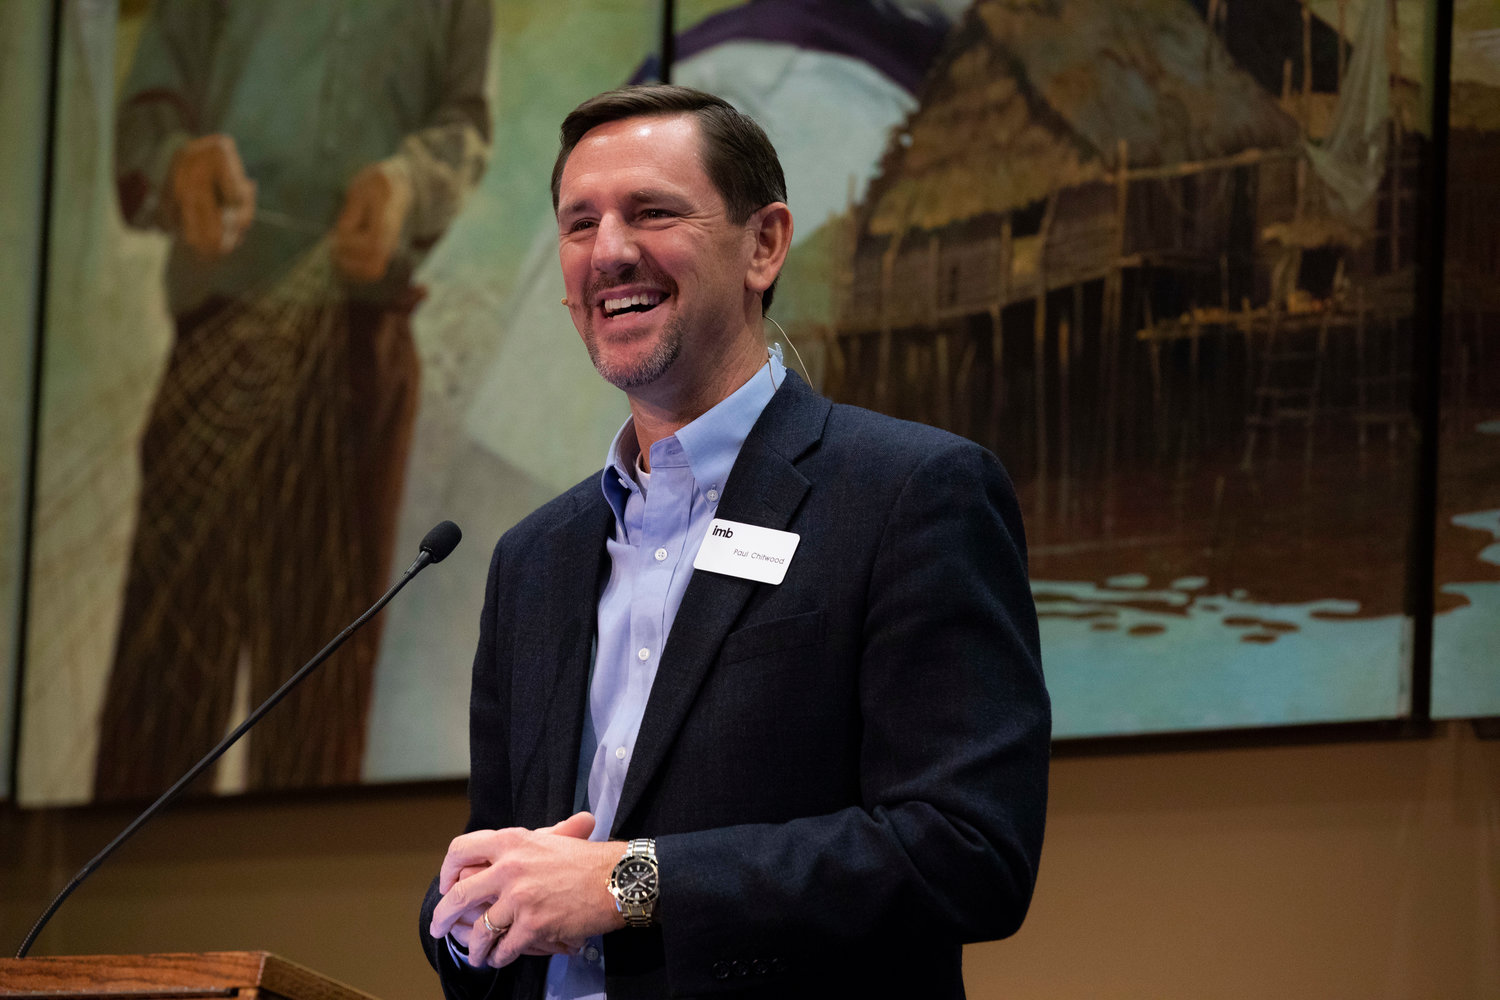 The public is invited to celebrate the installation of Paul Chitwood as the new International Mission Board president on Feb. 6 at 6:30 p.m. at Grove Avenue Baptist Church in Richmond, Va., or by Livestream. (IMB photo)